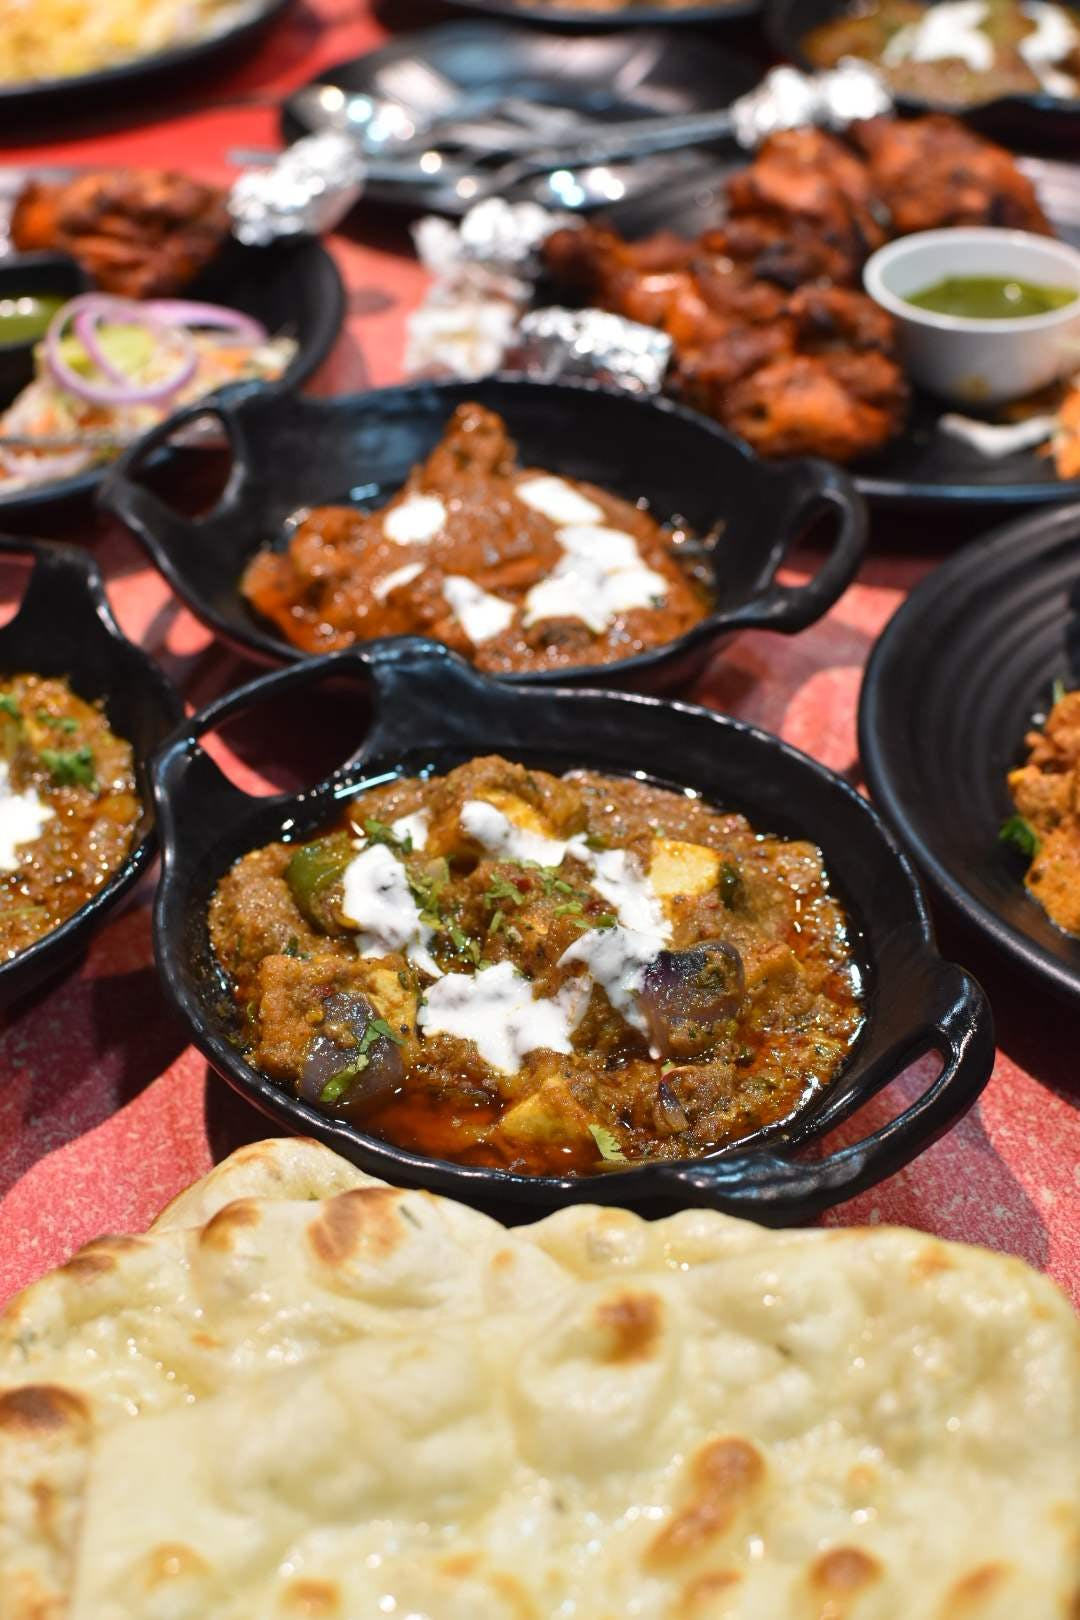 Dish,Food,Cuisine,Meal,Ingredient,Naan,Produce,Indian cuisine,Comfort food,Curry